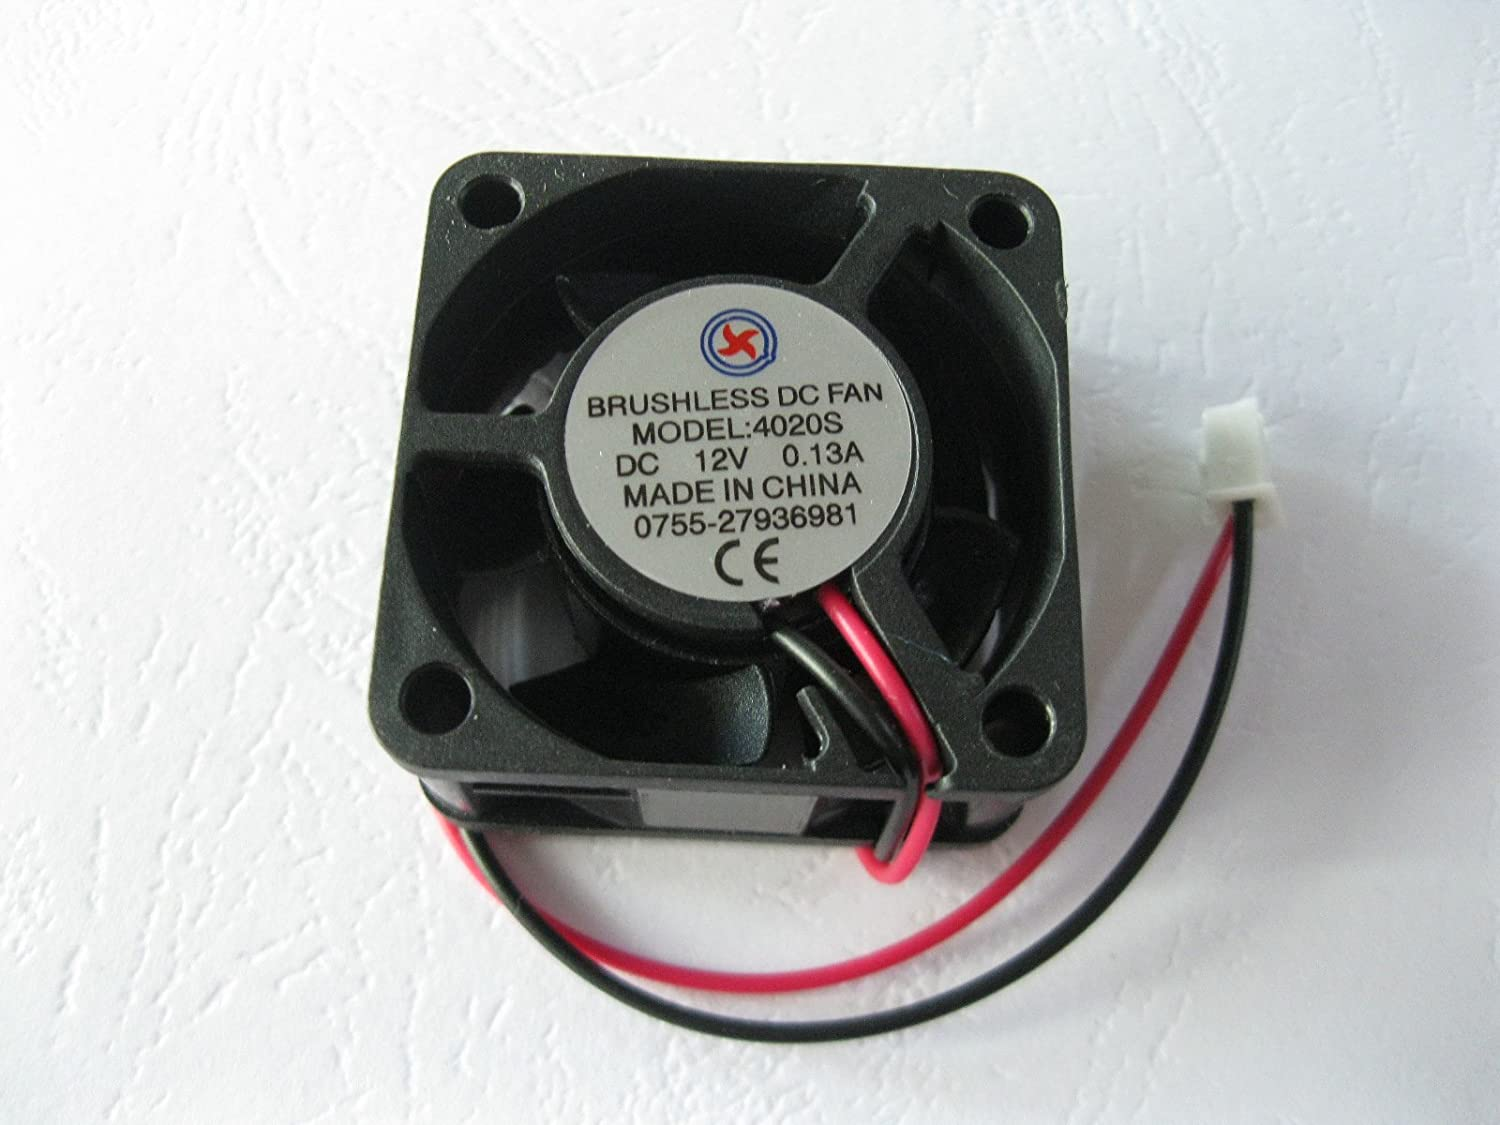 1 Pcs DC Fan 12V 4020 2 Pin 40x40x20mm Brushless DC Cooling Blade Fan